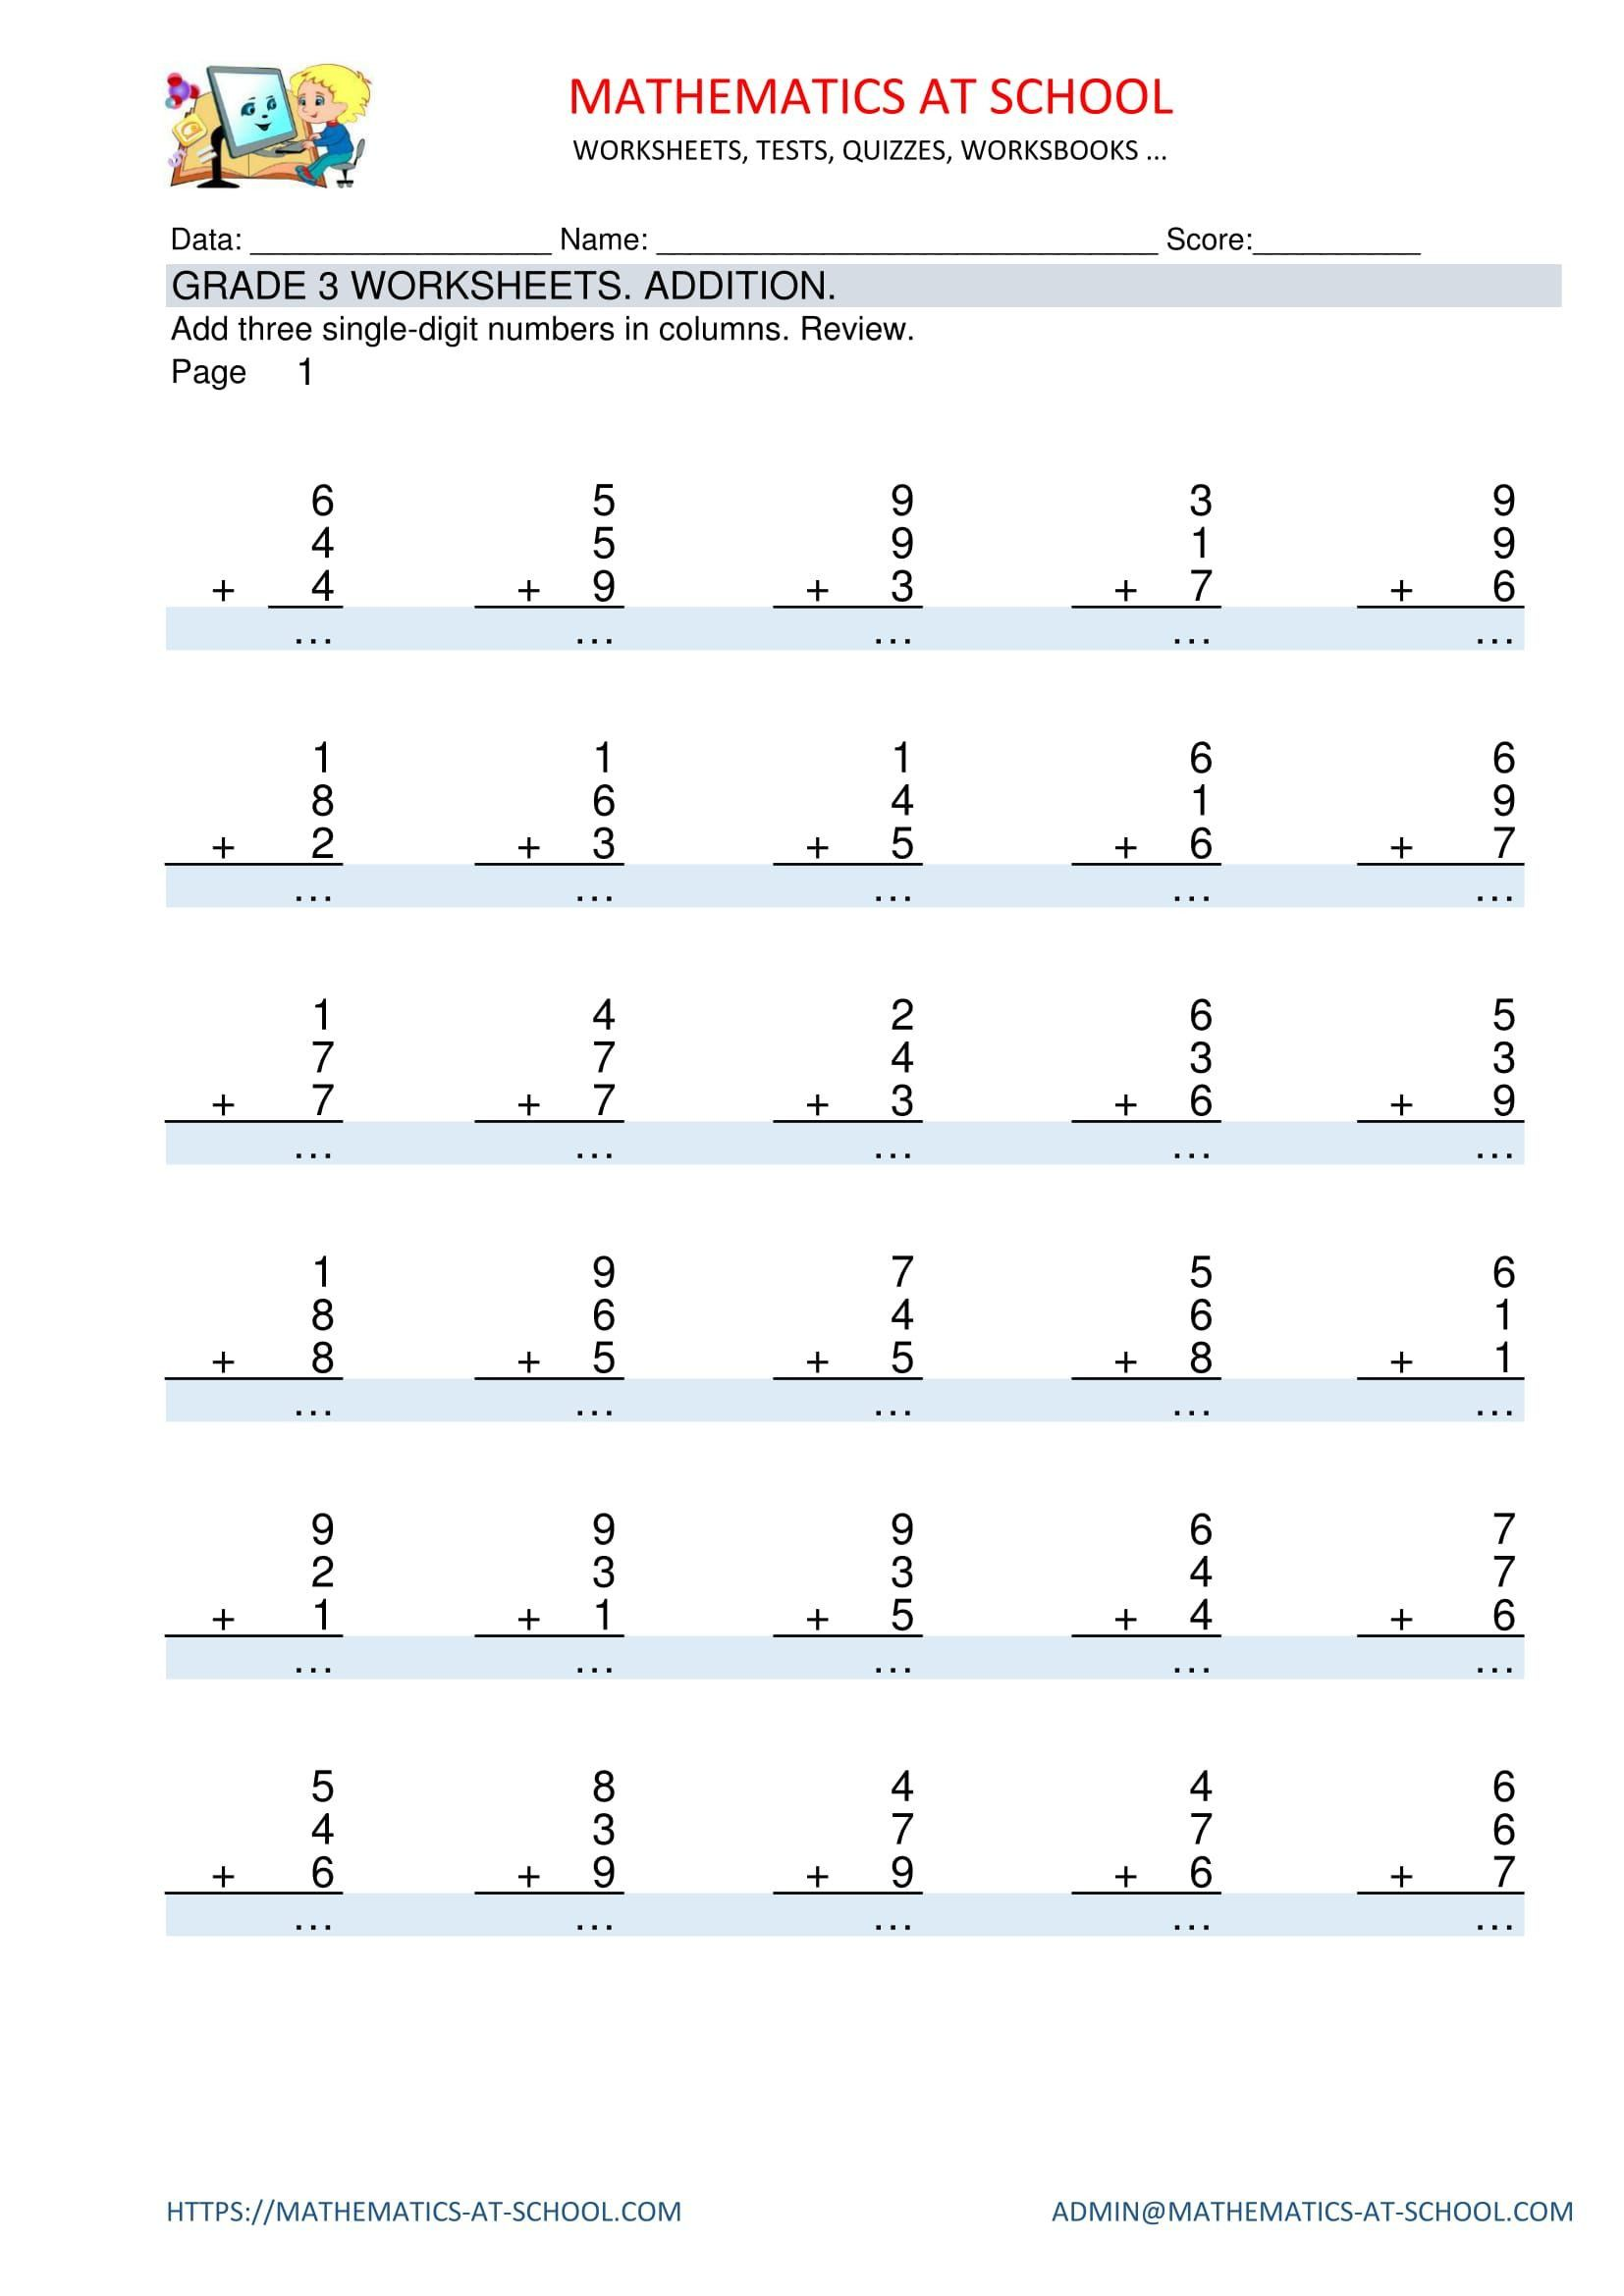 4 Free Math Worksheets Second Grade 2 Addition Add 3 Digit Numbers In  Columns with Regrouping...   Free math worksheets [ 2339 x 1654 Pixel ]